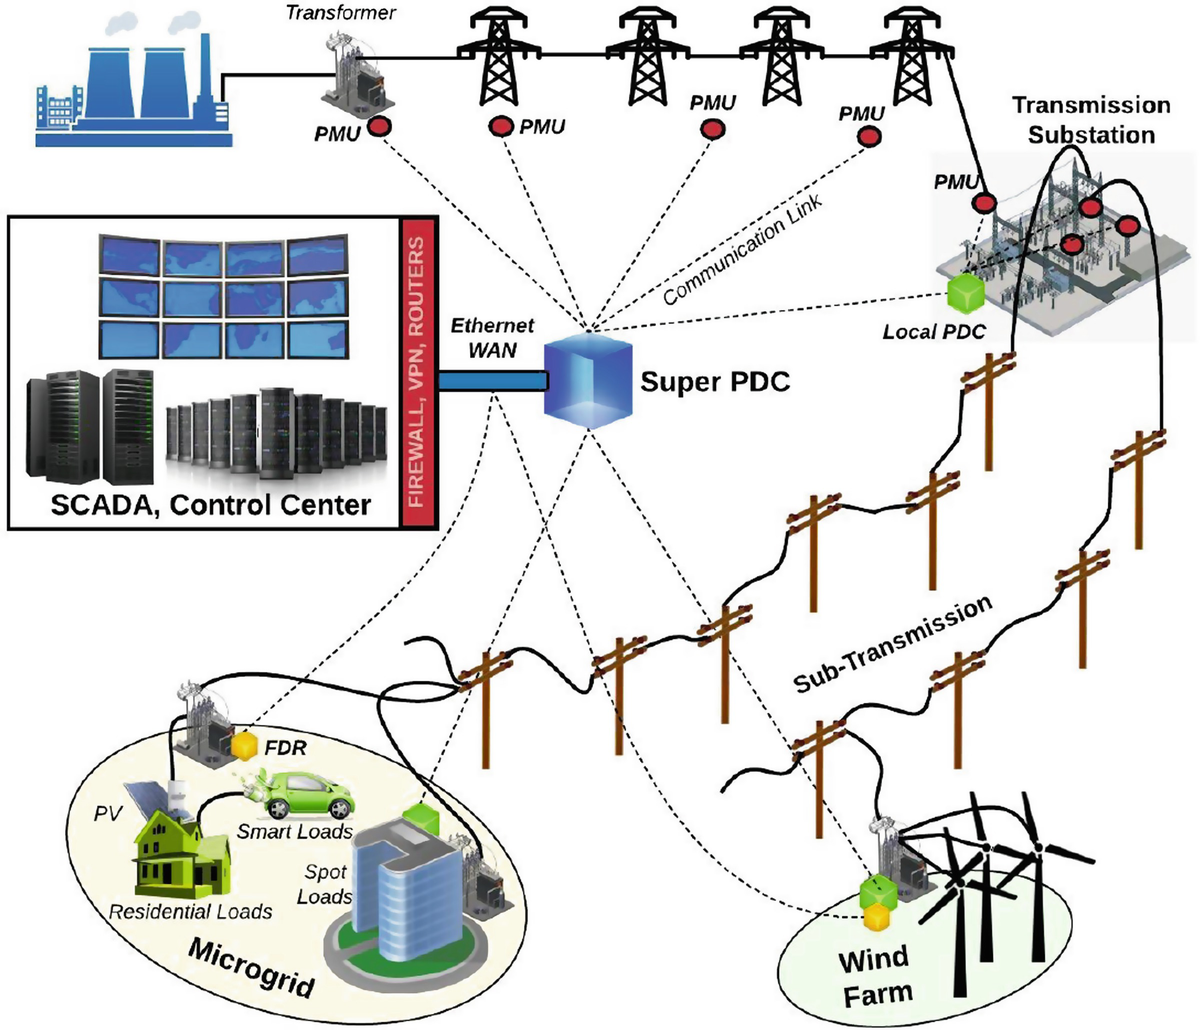 Trends and Future Directions of Research for Smart Grid IoT